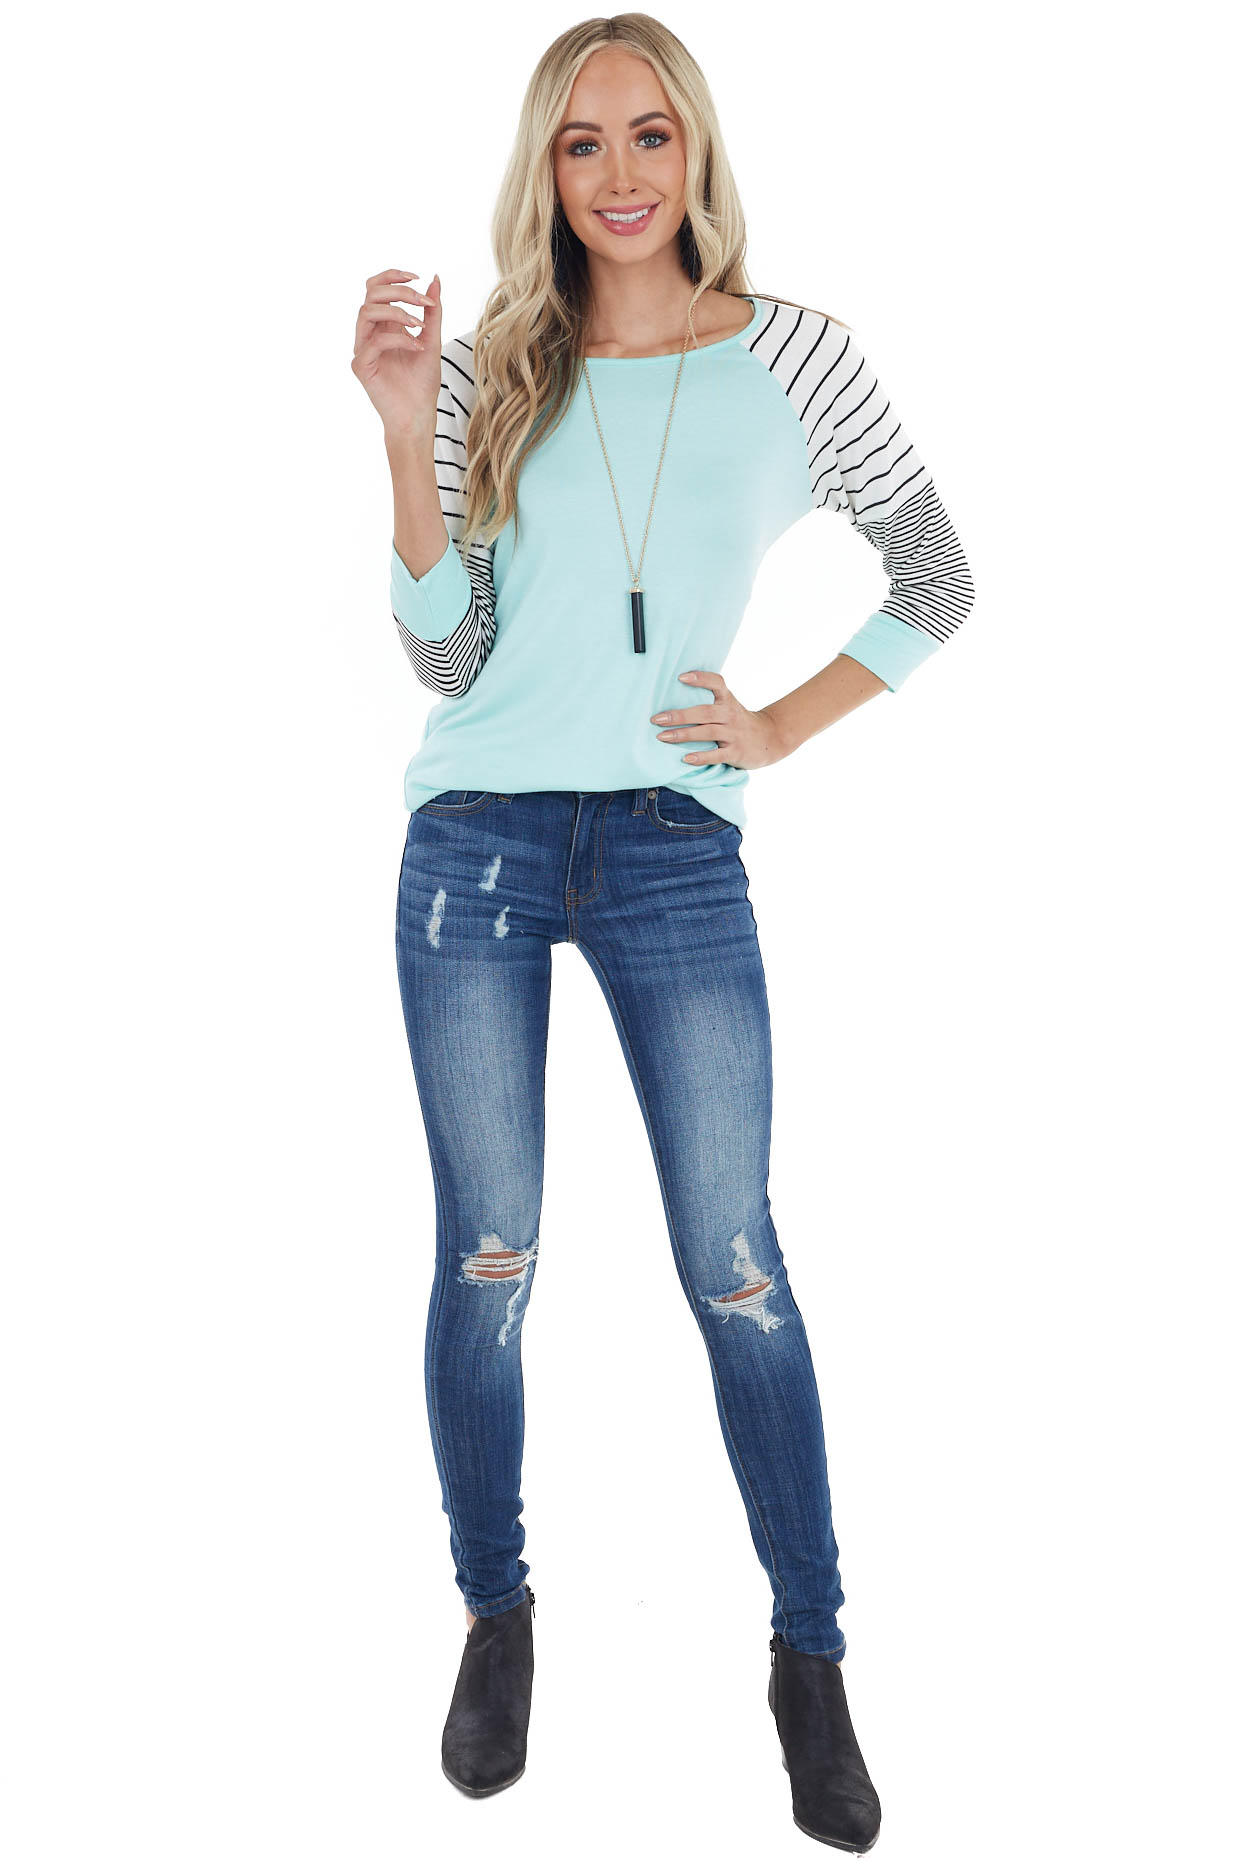 Turquoise 3/4 Striped Raglan Sleeve Top with Rounded Neck